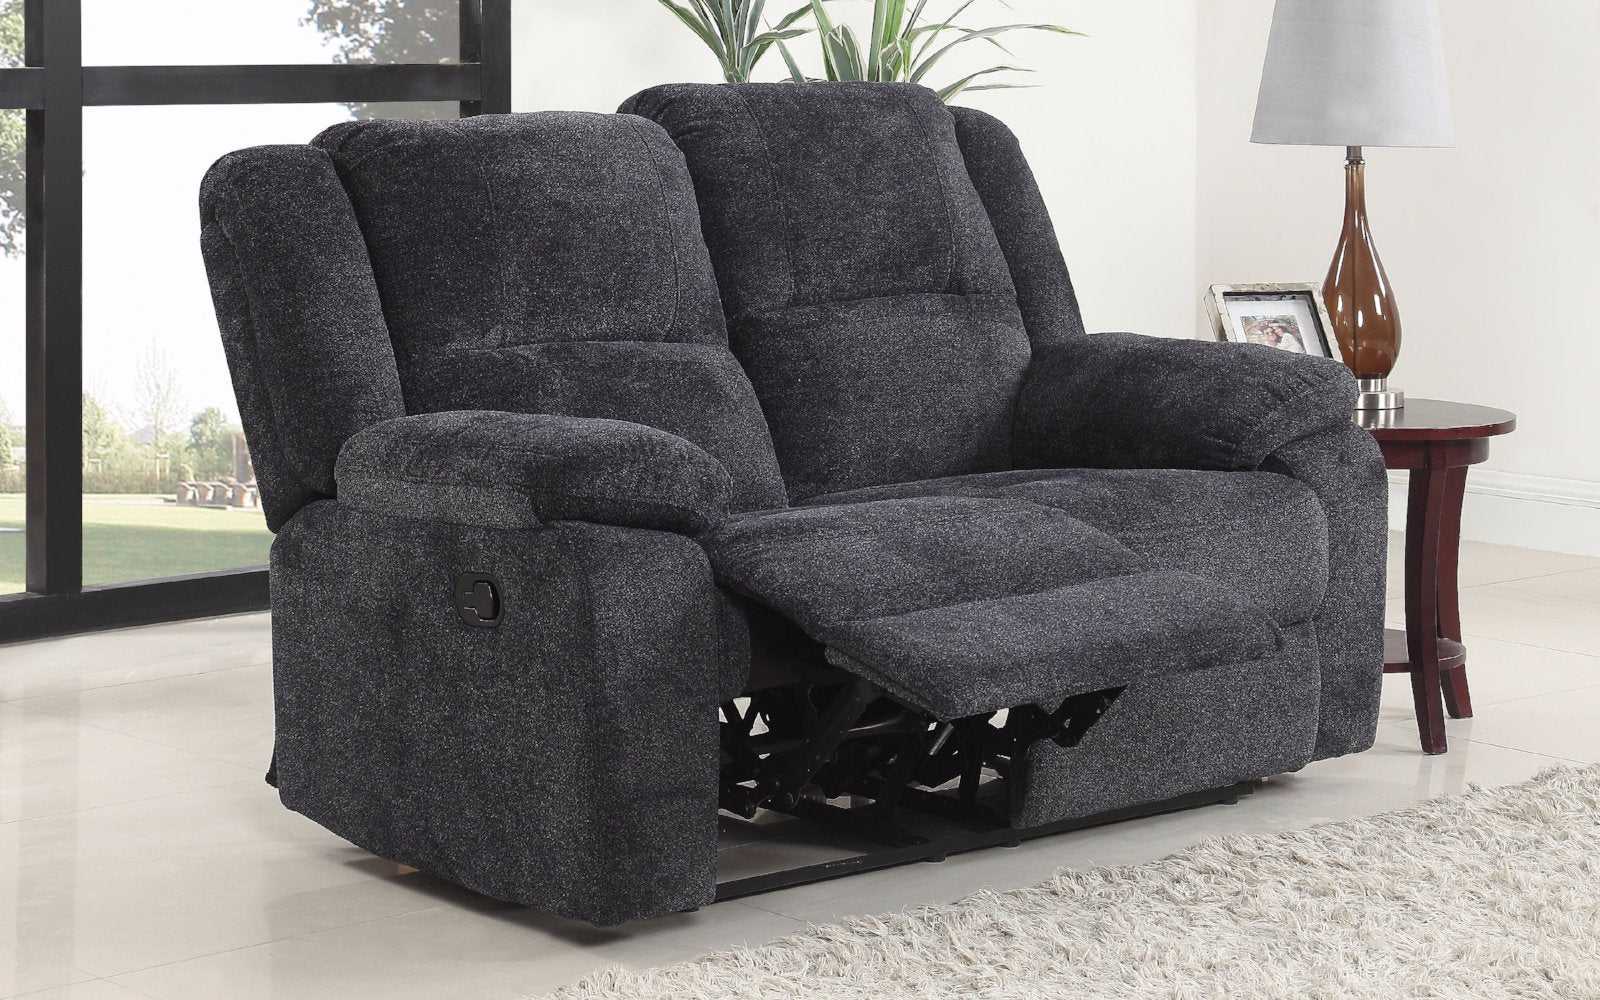 ... Asturias Traditional Classic Microfiber Double Recliner Loveseat Dark Grey Lifestyle ... & Recliners | Reclining Loveseats | Recliner Chairs - Sofamania islam-shia.org